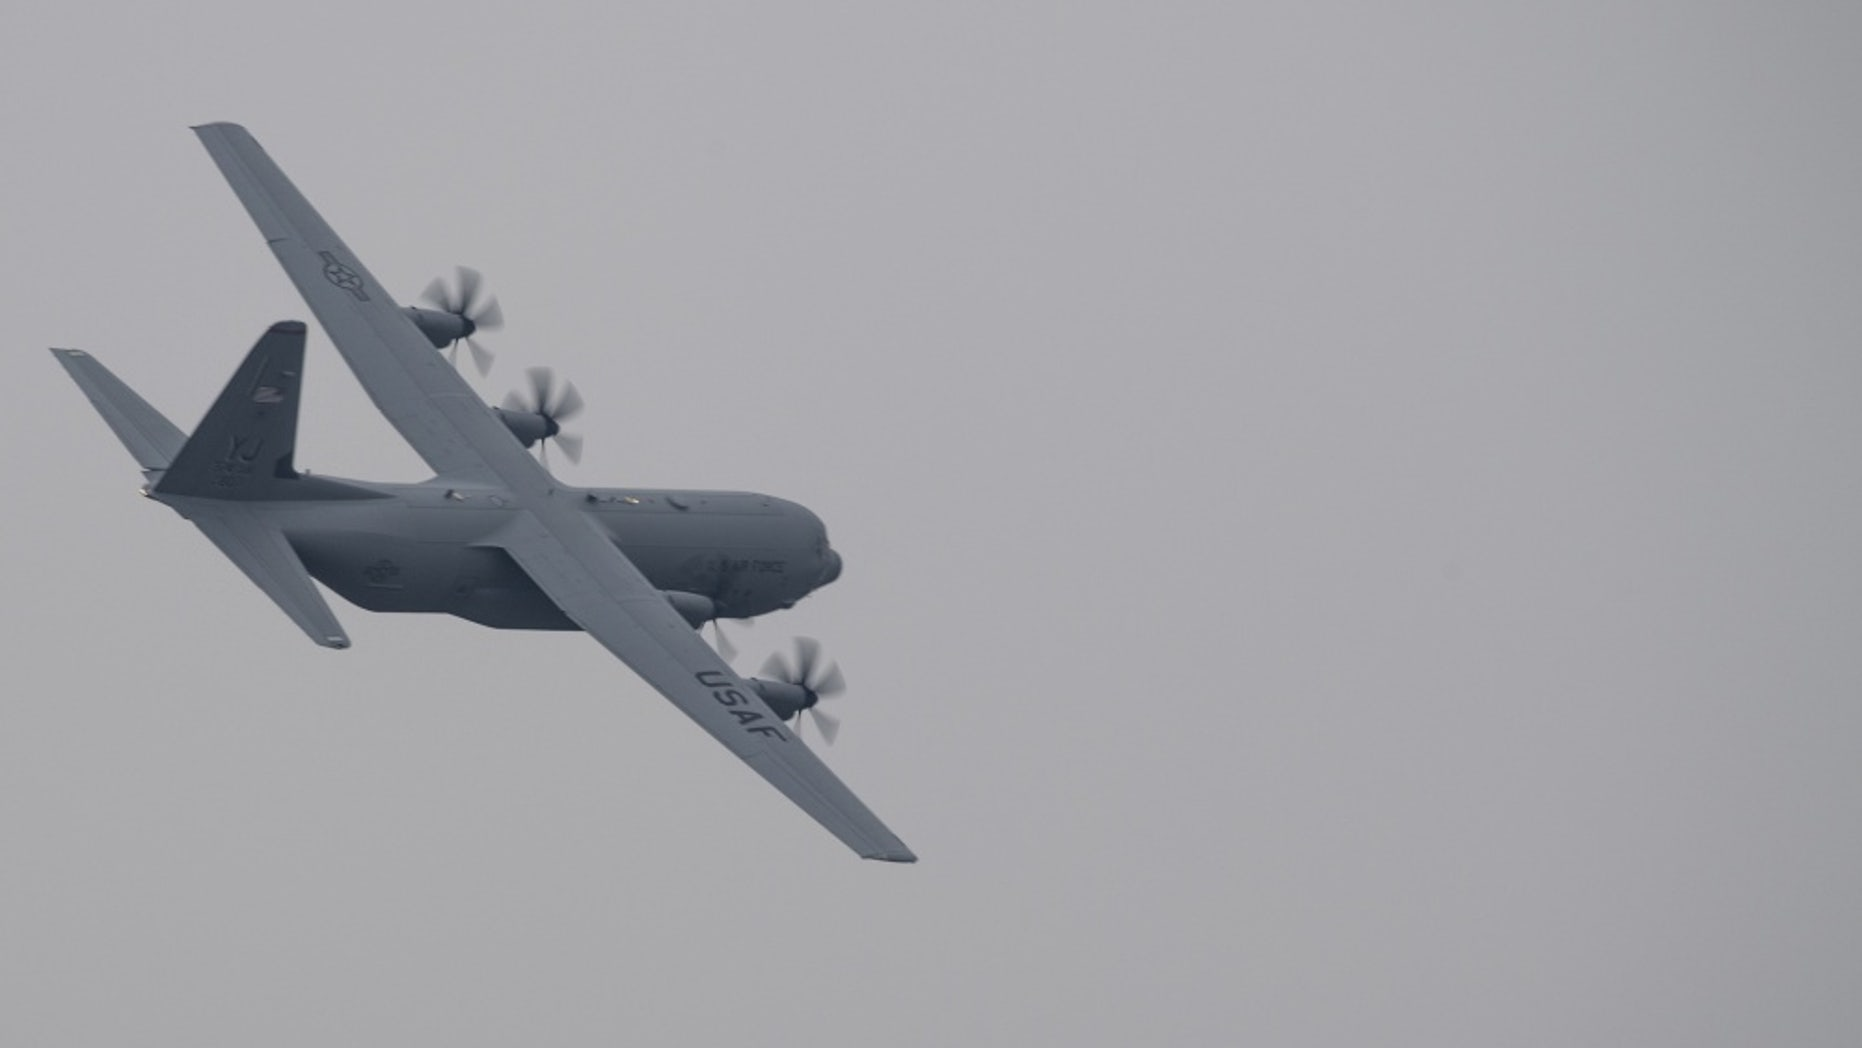 C-130 gets new 'electronic propeller controls' to fly into 2030s